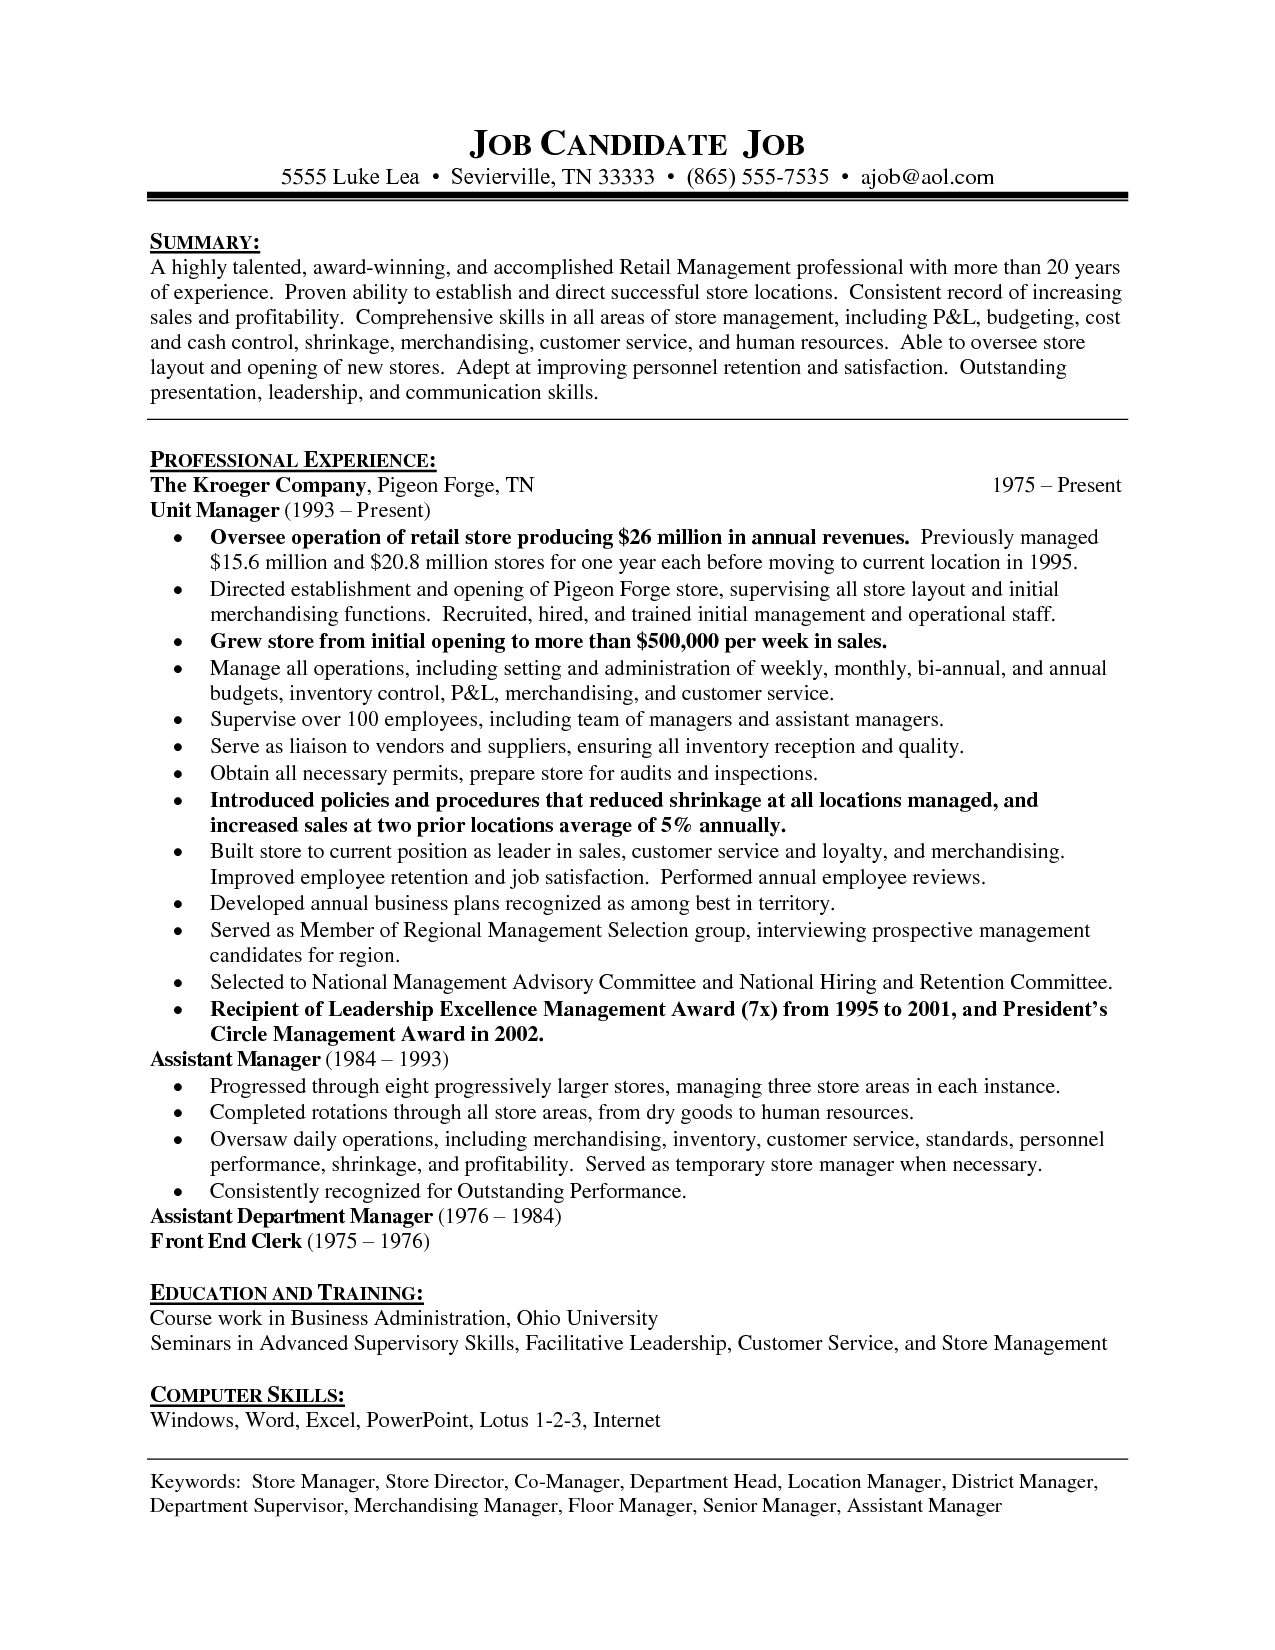 Assistant Manager Resume Format Simple Retail Department Store Manager Resume  Vision Specialist  Good .